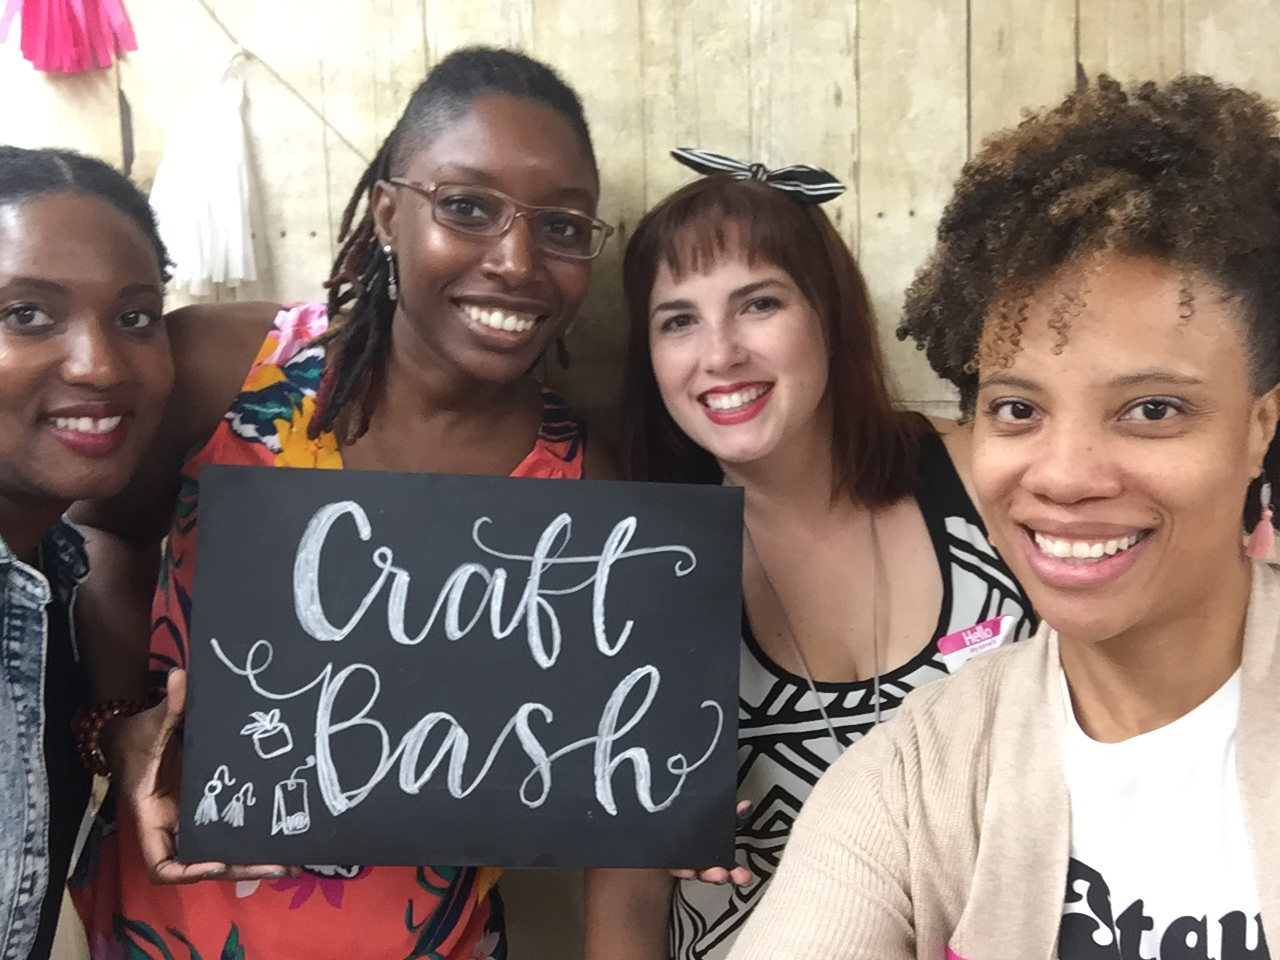 Craft Bash – a DIY party in Chicago